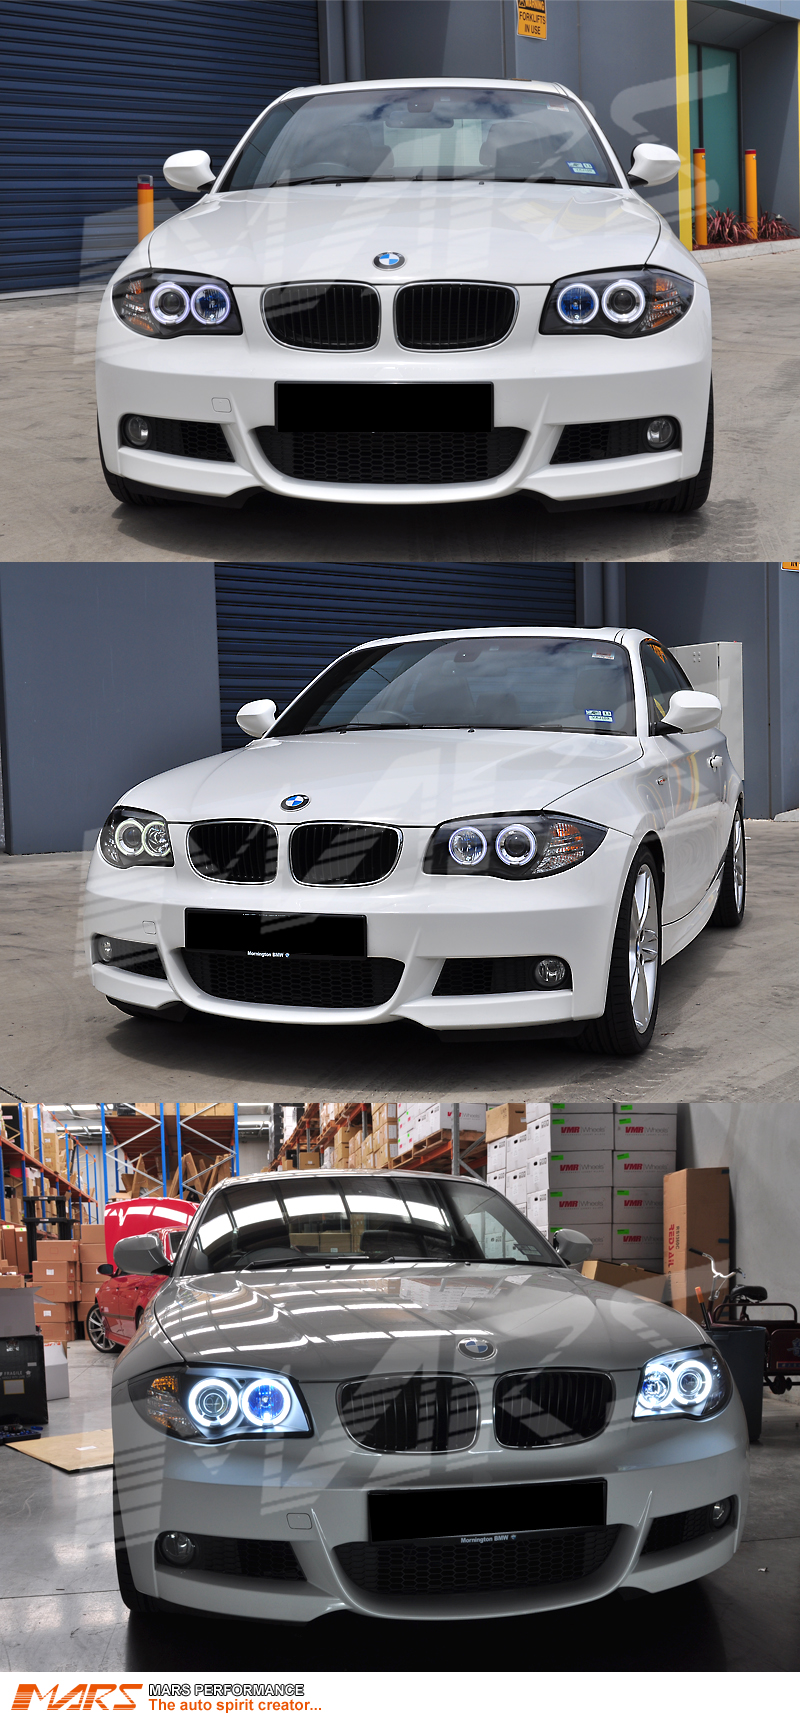 Black Ccfl Angel Eyes Projector Head Lights For Bmw E81